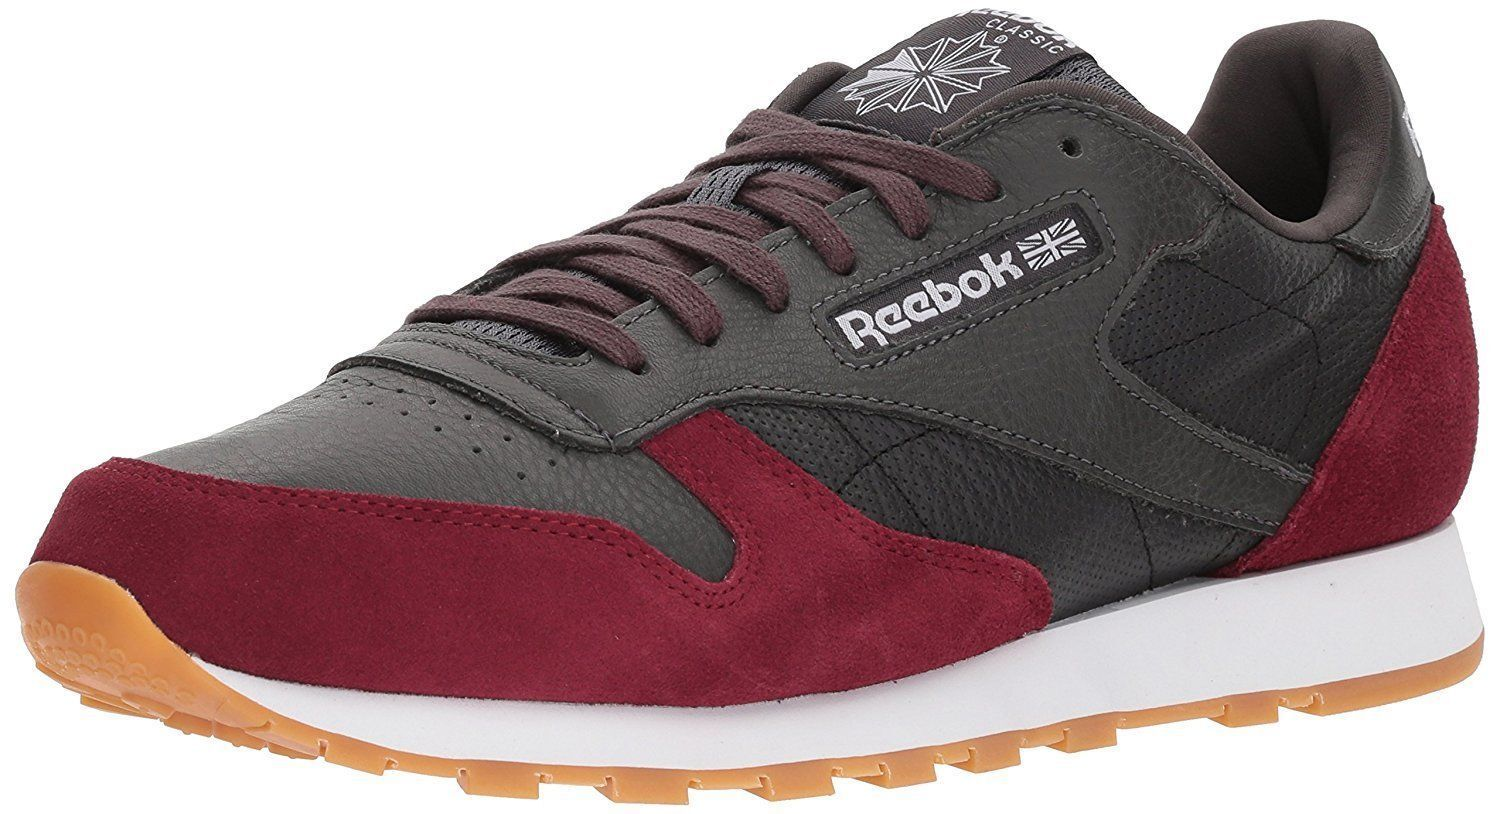 Reebok Classic Leather Men's Running Training Shoes Coal/Urban Maroon BS9744